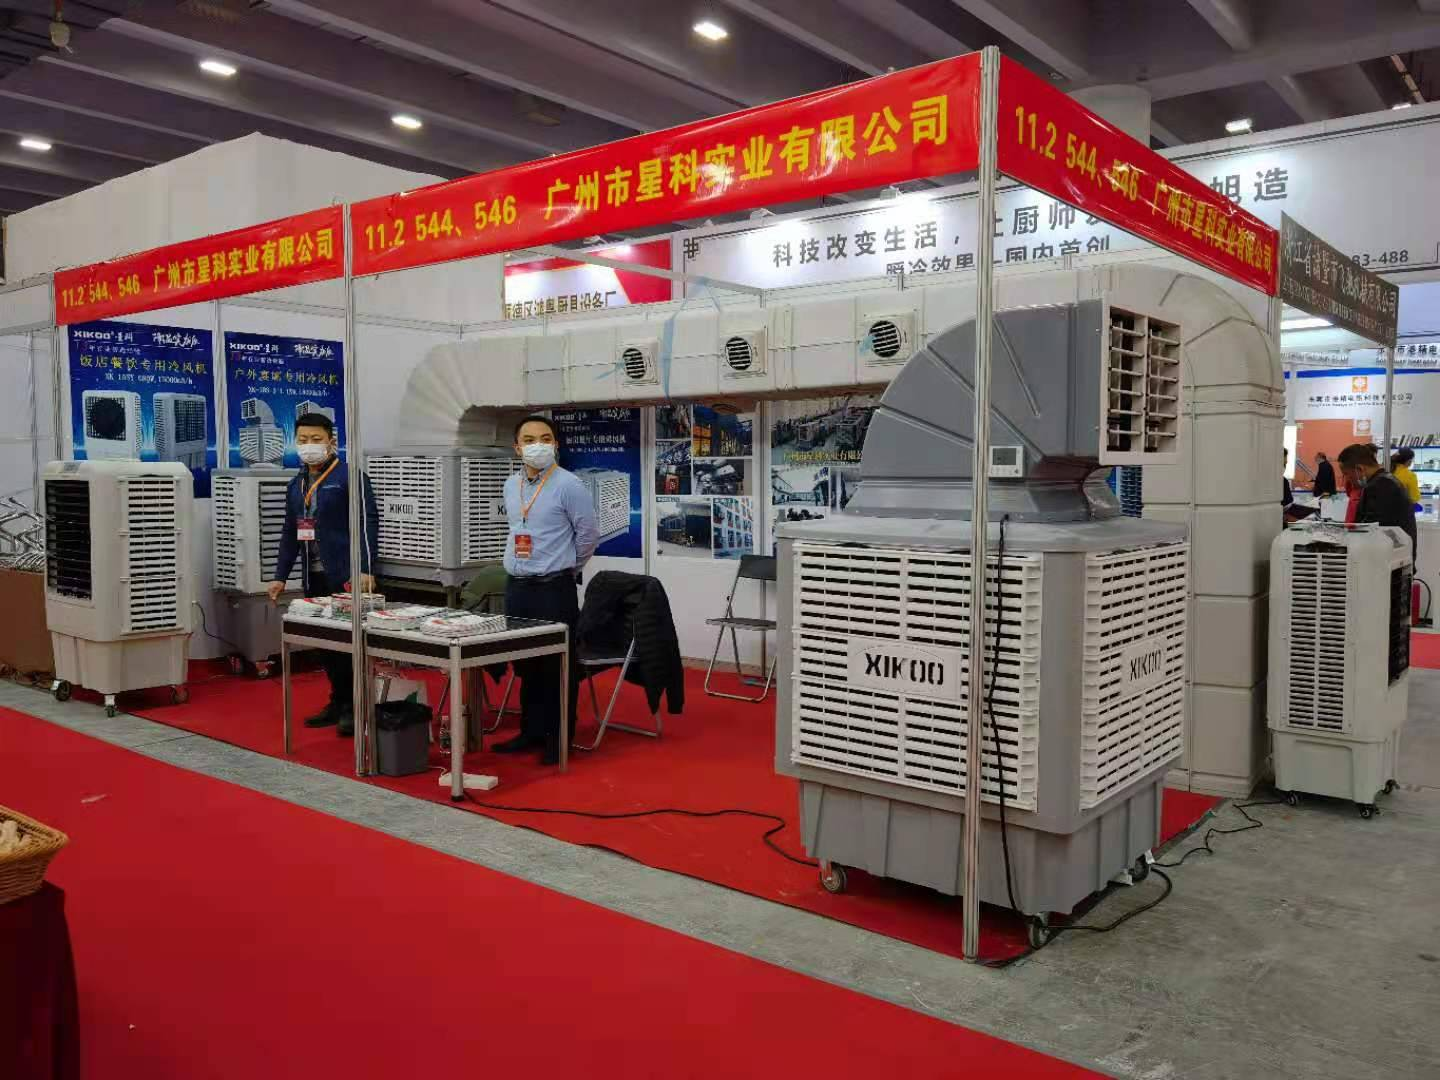 XIKOO attended the 27th Guangzhou Hotel Equipment and Supply Exhibition